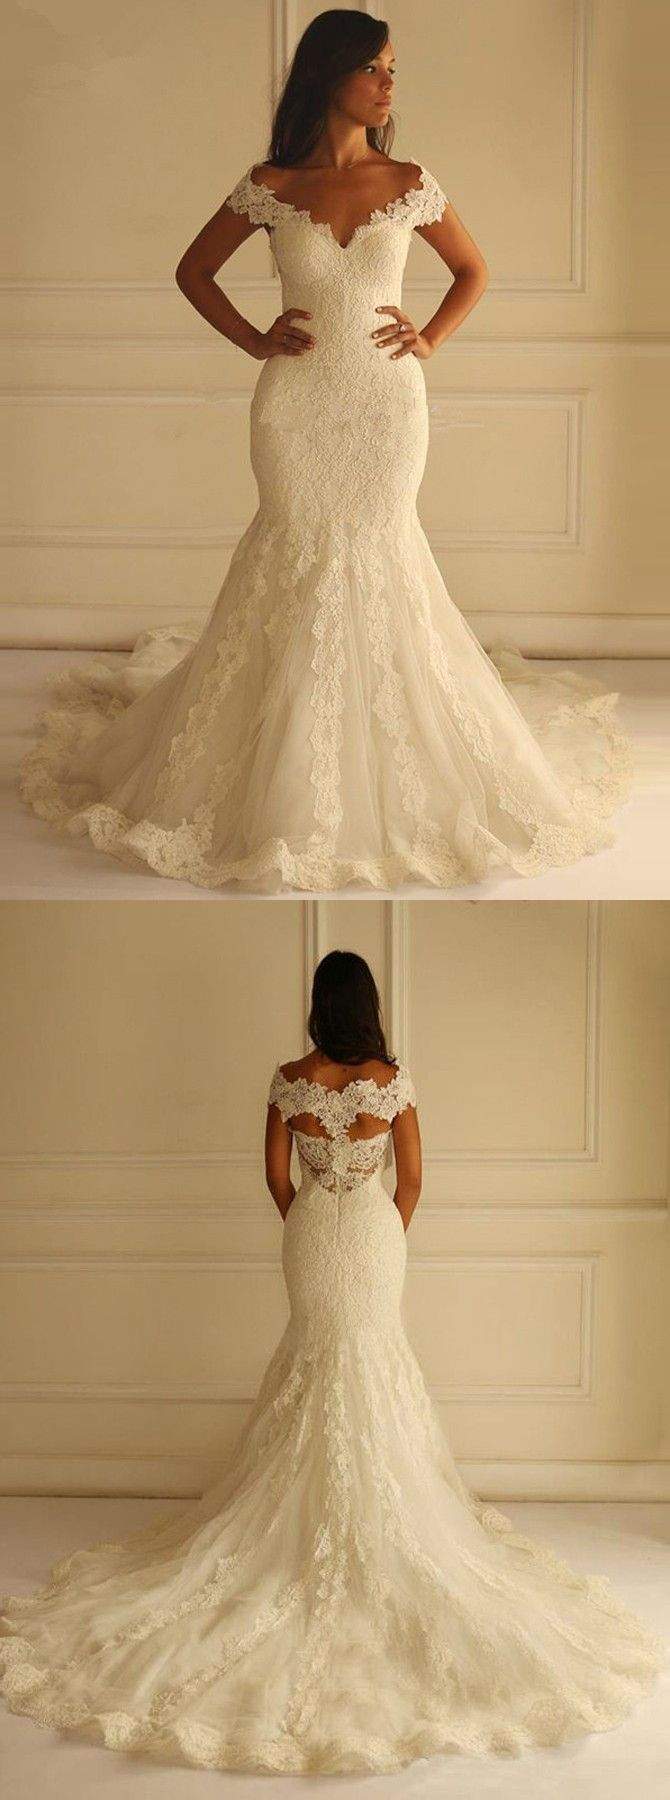 Best 25+ Off white wedding dresses ideas on Pinterest ...